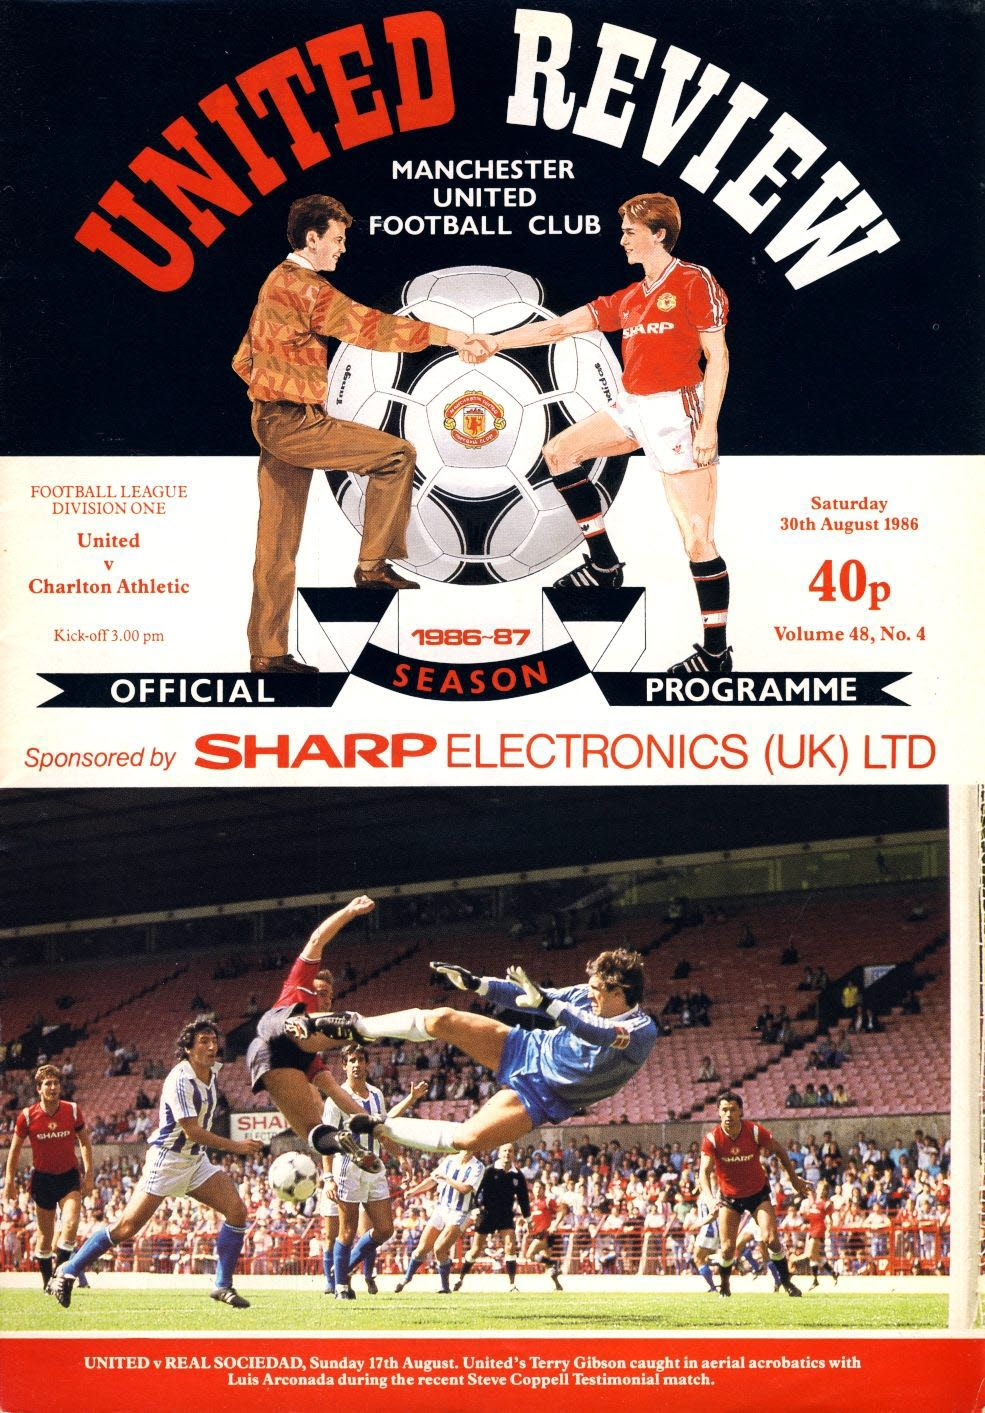 Manchester Utd V Charlton Athletic 30th August 1986 Official Programme Refe102060 United Review Charlton Athletic Manchester United Club Manchester United